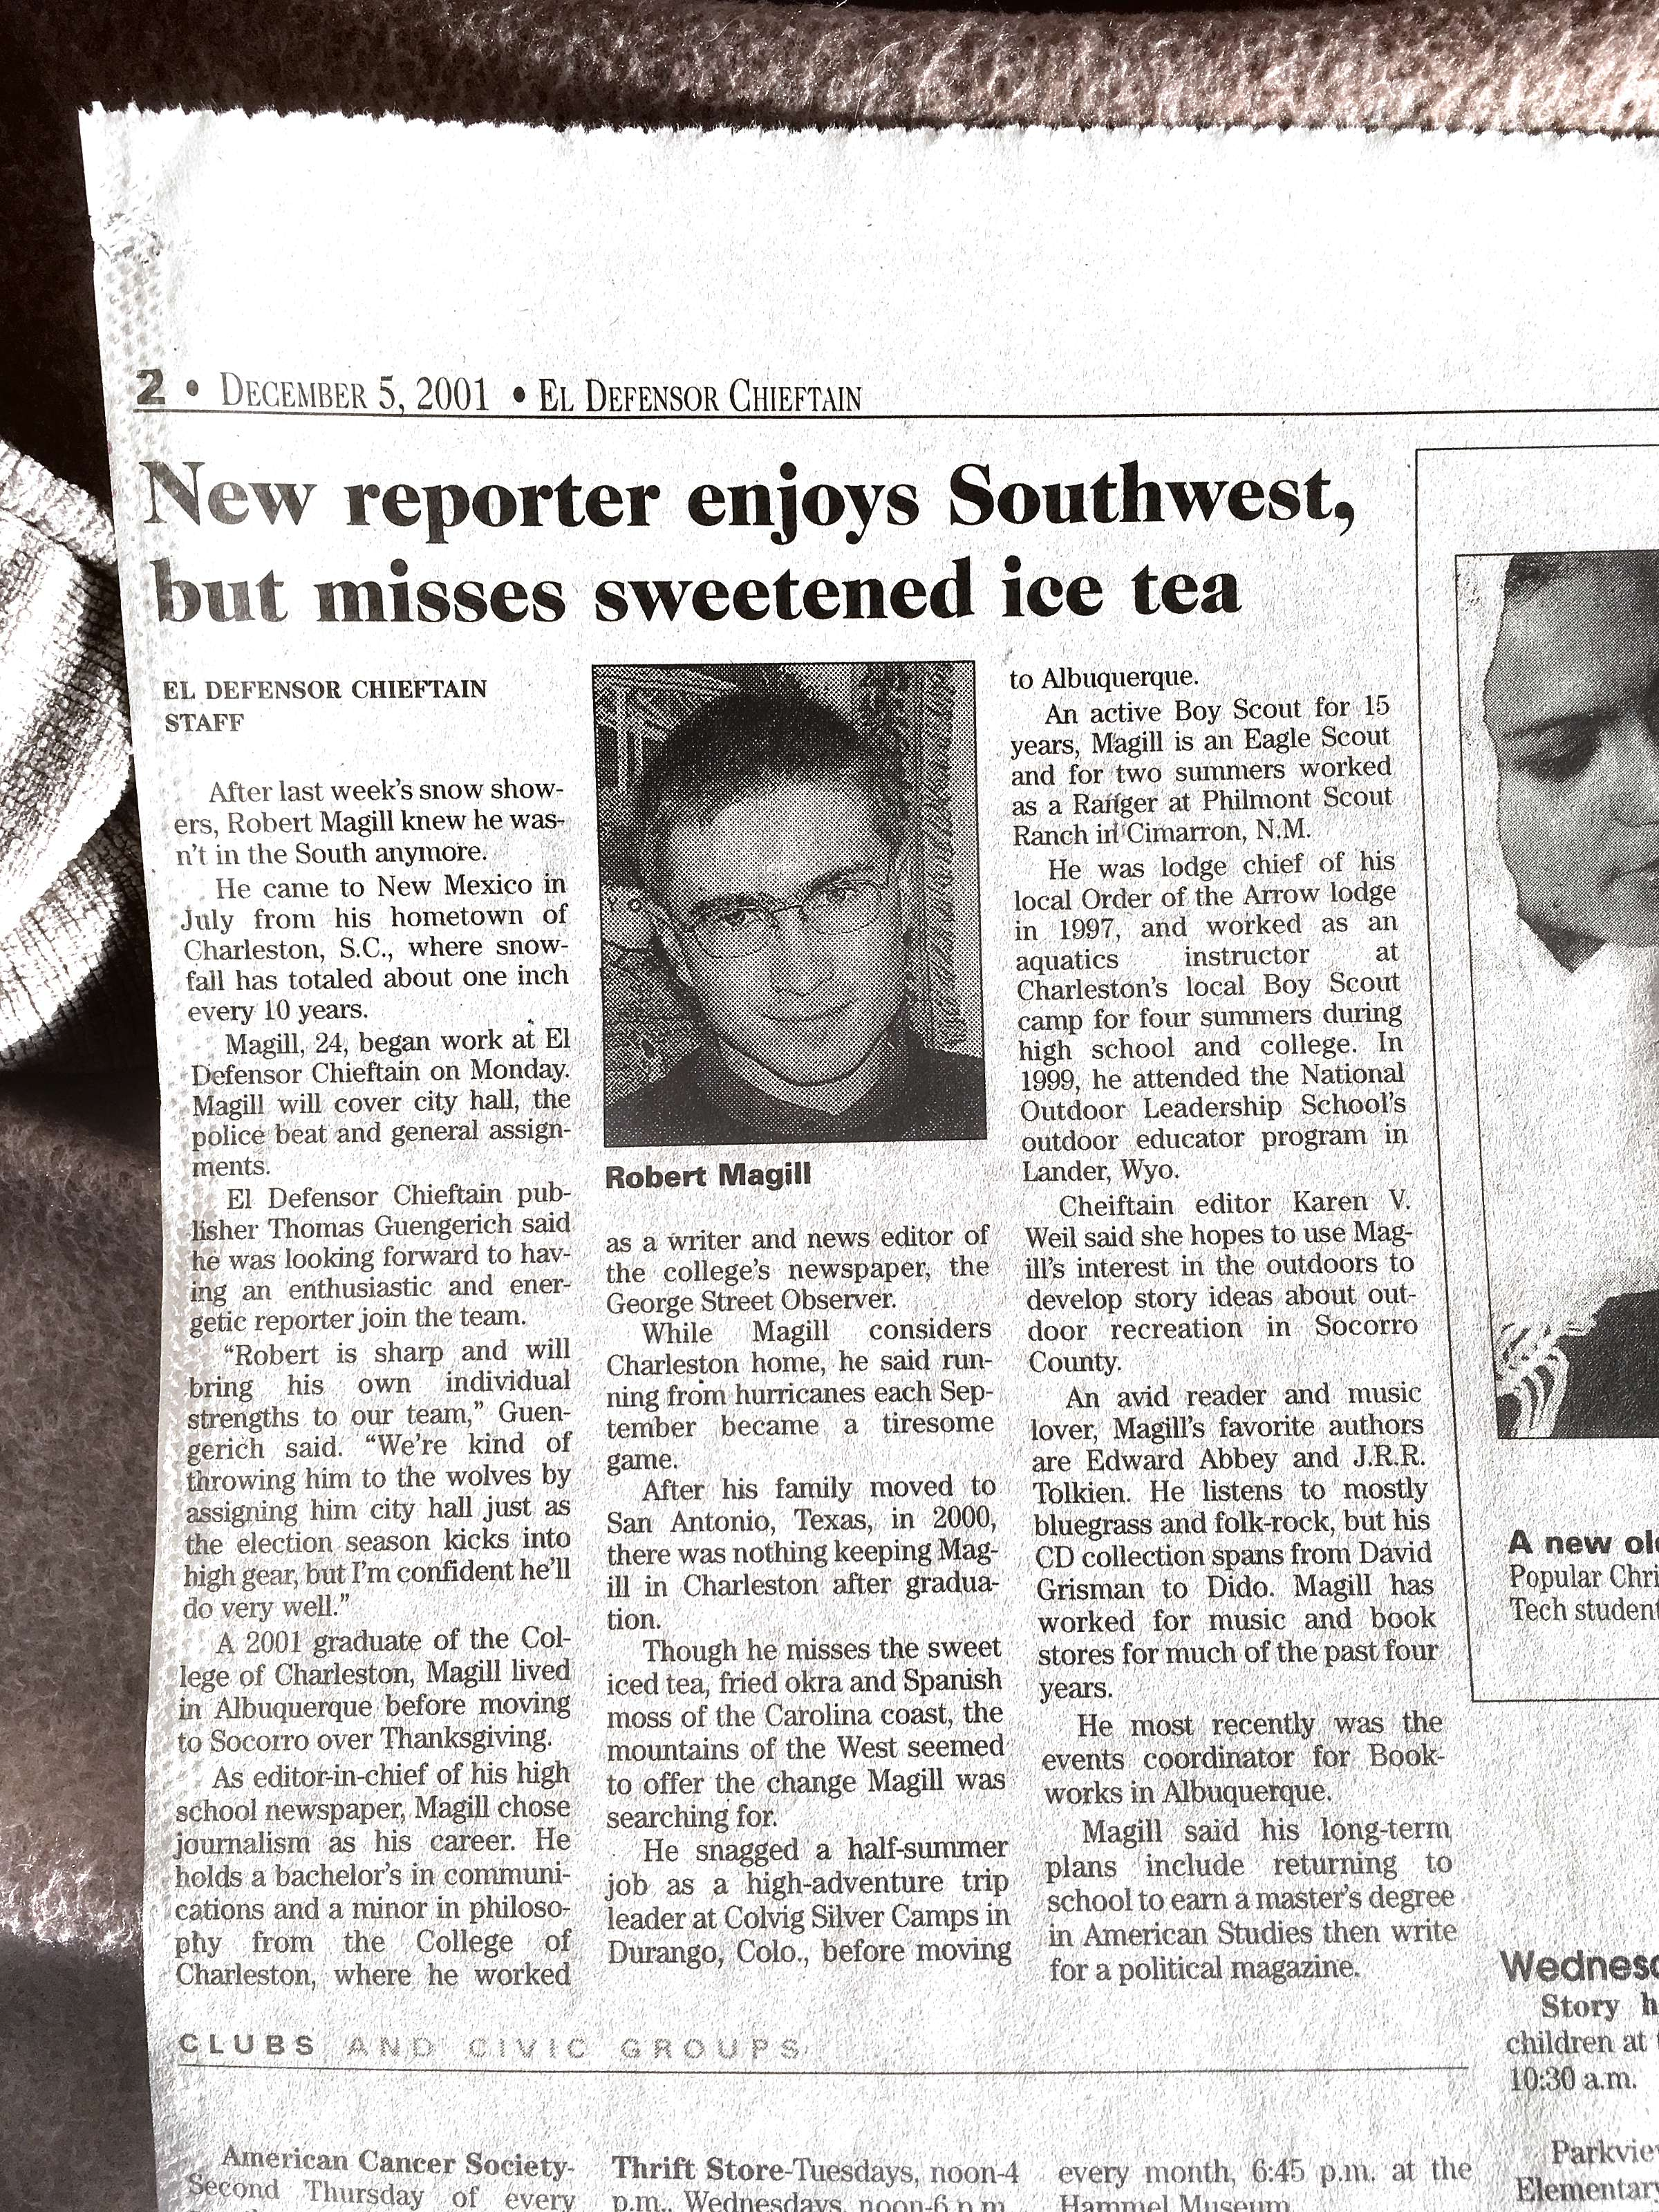 My new-reporter bio published on the first day of my first journalism job at the Defensor Chieftain newspaper, Dec. 5, 2001.